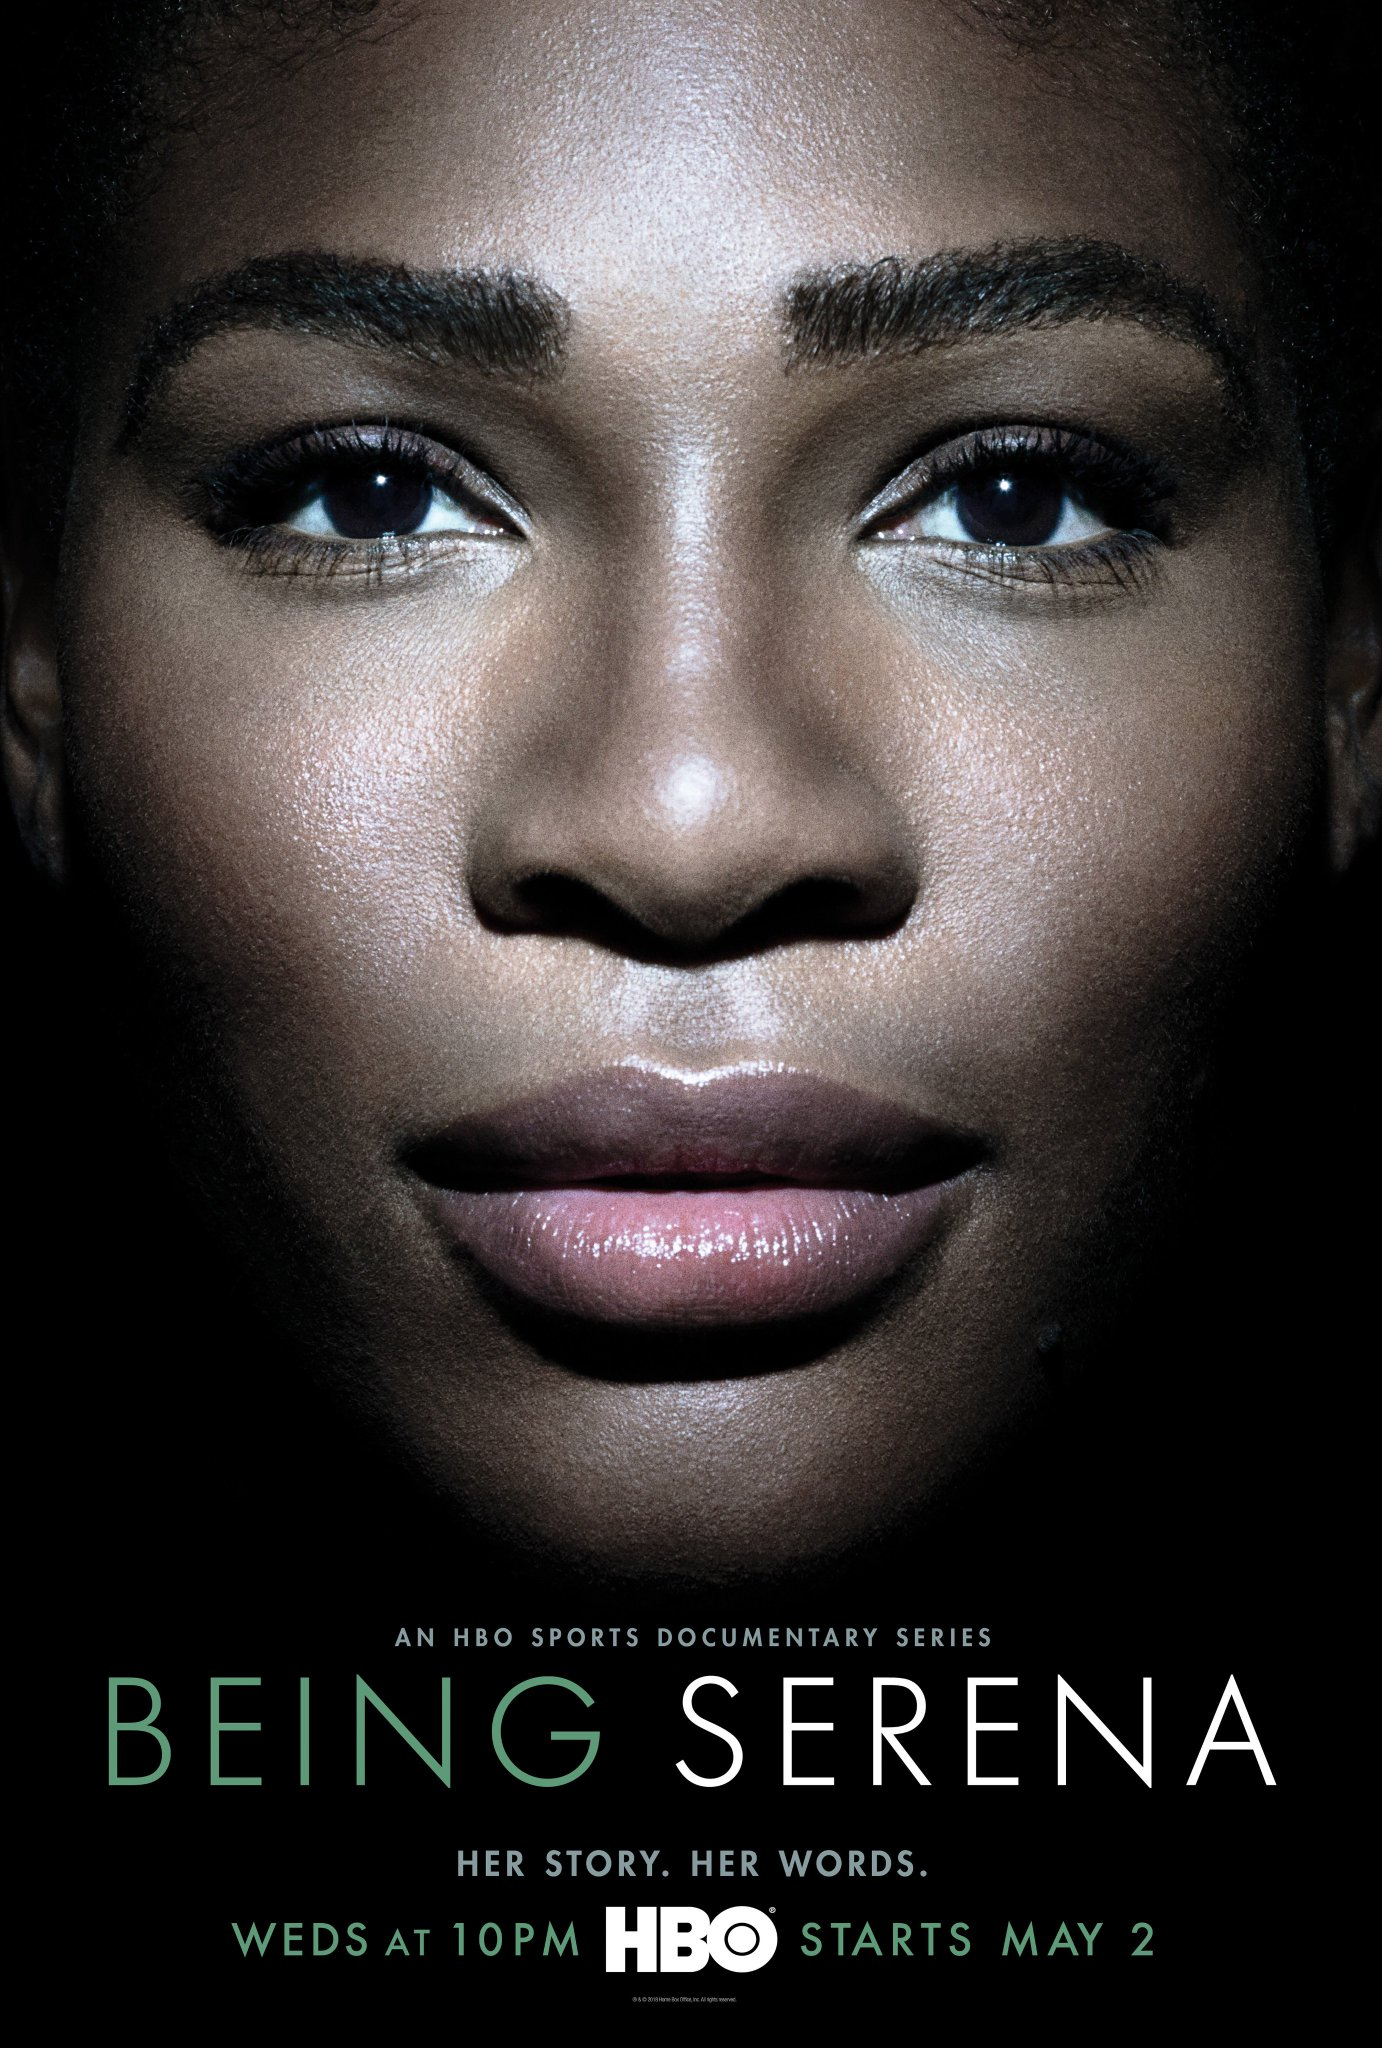 My story. My words. My @HBO documentary series, #BeingSerena, starting May 2. Find out more: https://t.co/kmiVBe45ev https://t.co/0INKTYzJiu